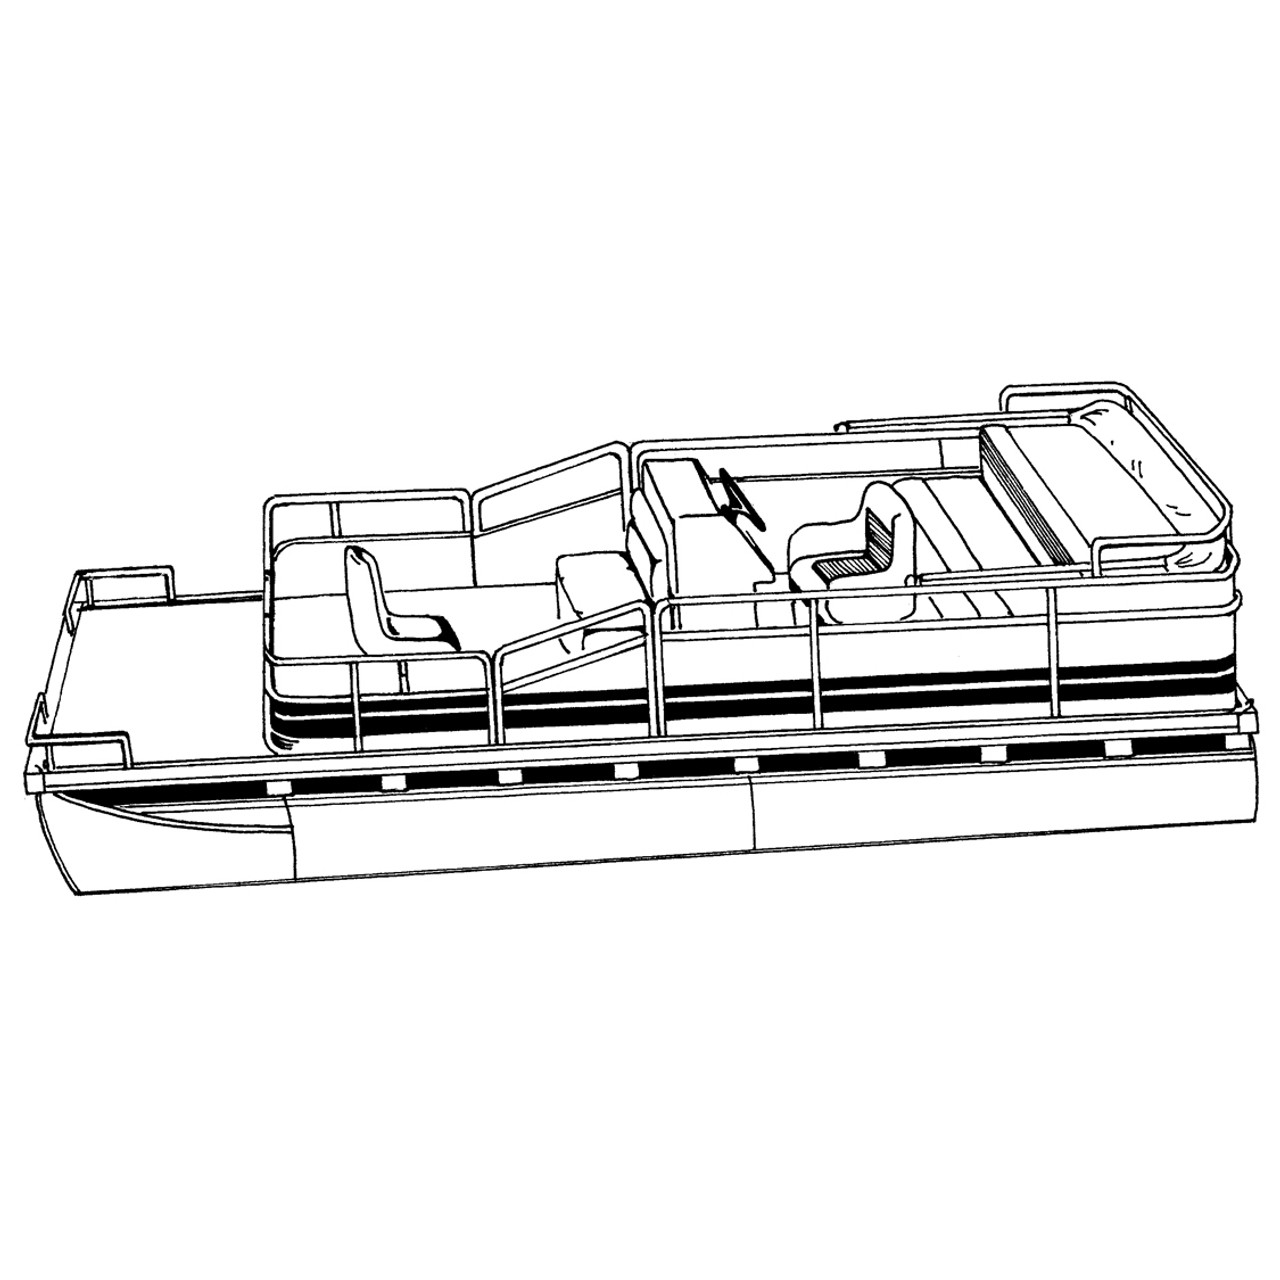 small resolution of cover fits pontoon with bimini top and rails that partially enclose deck leaving 1